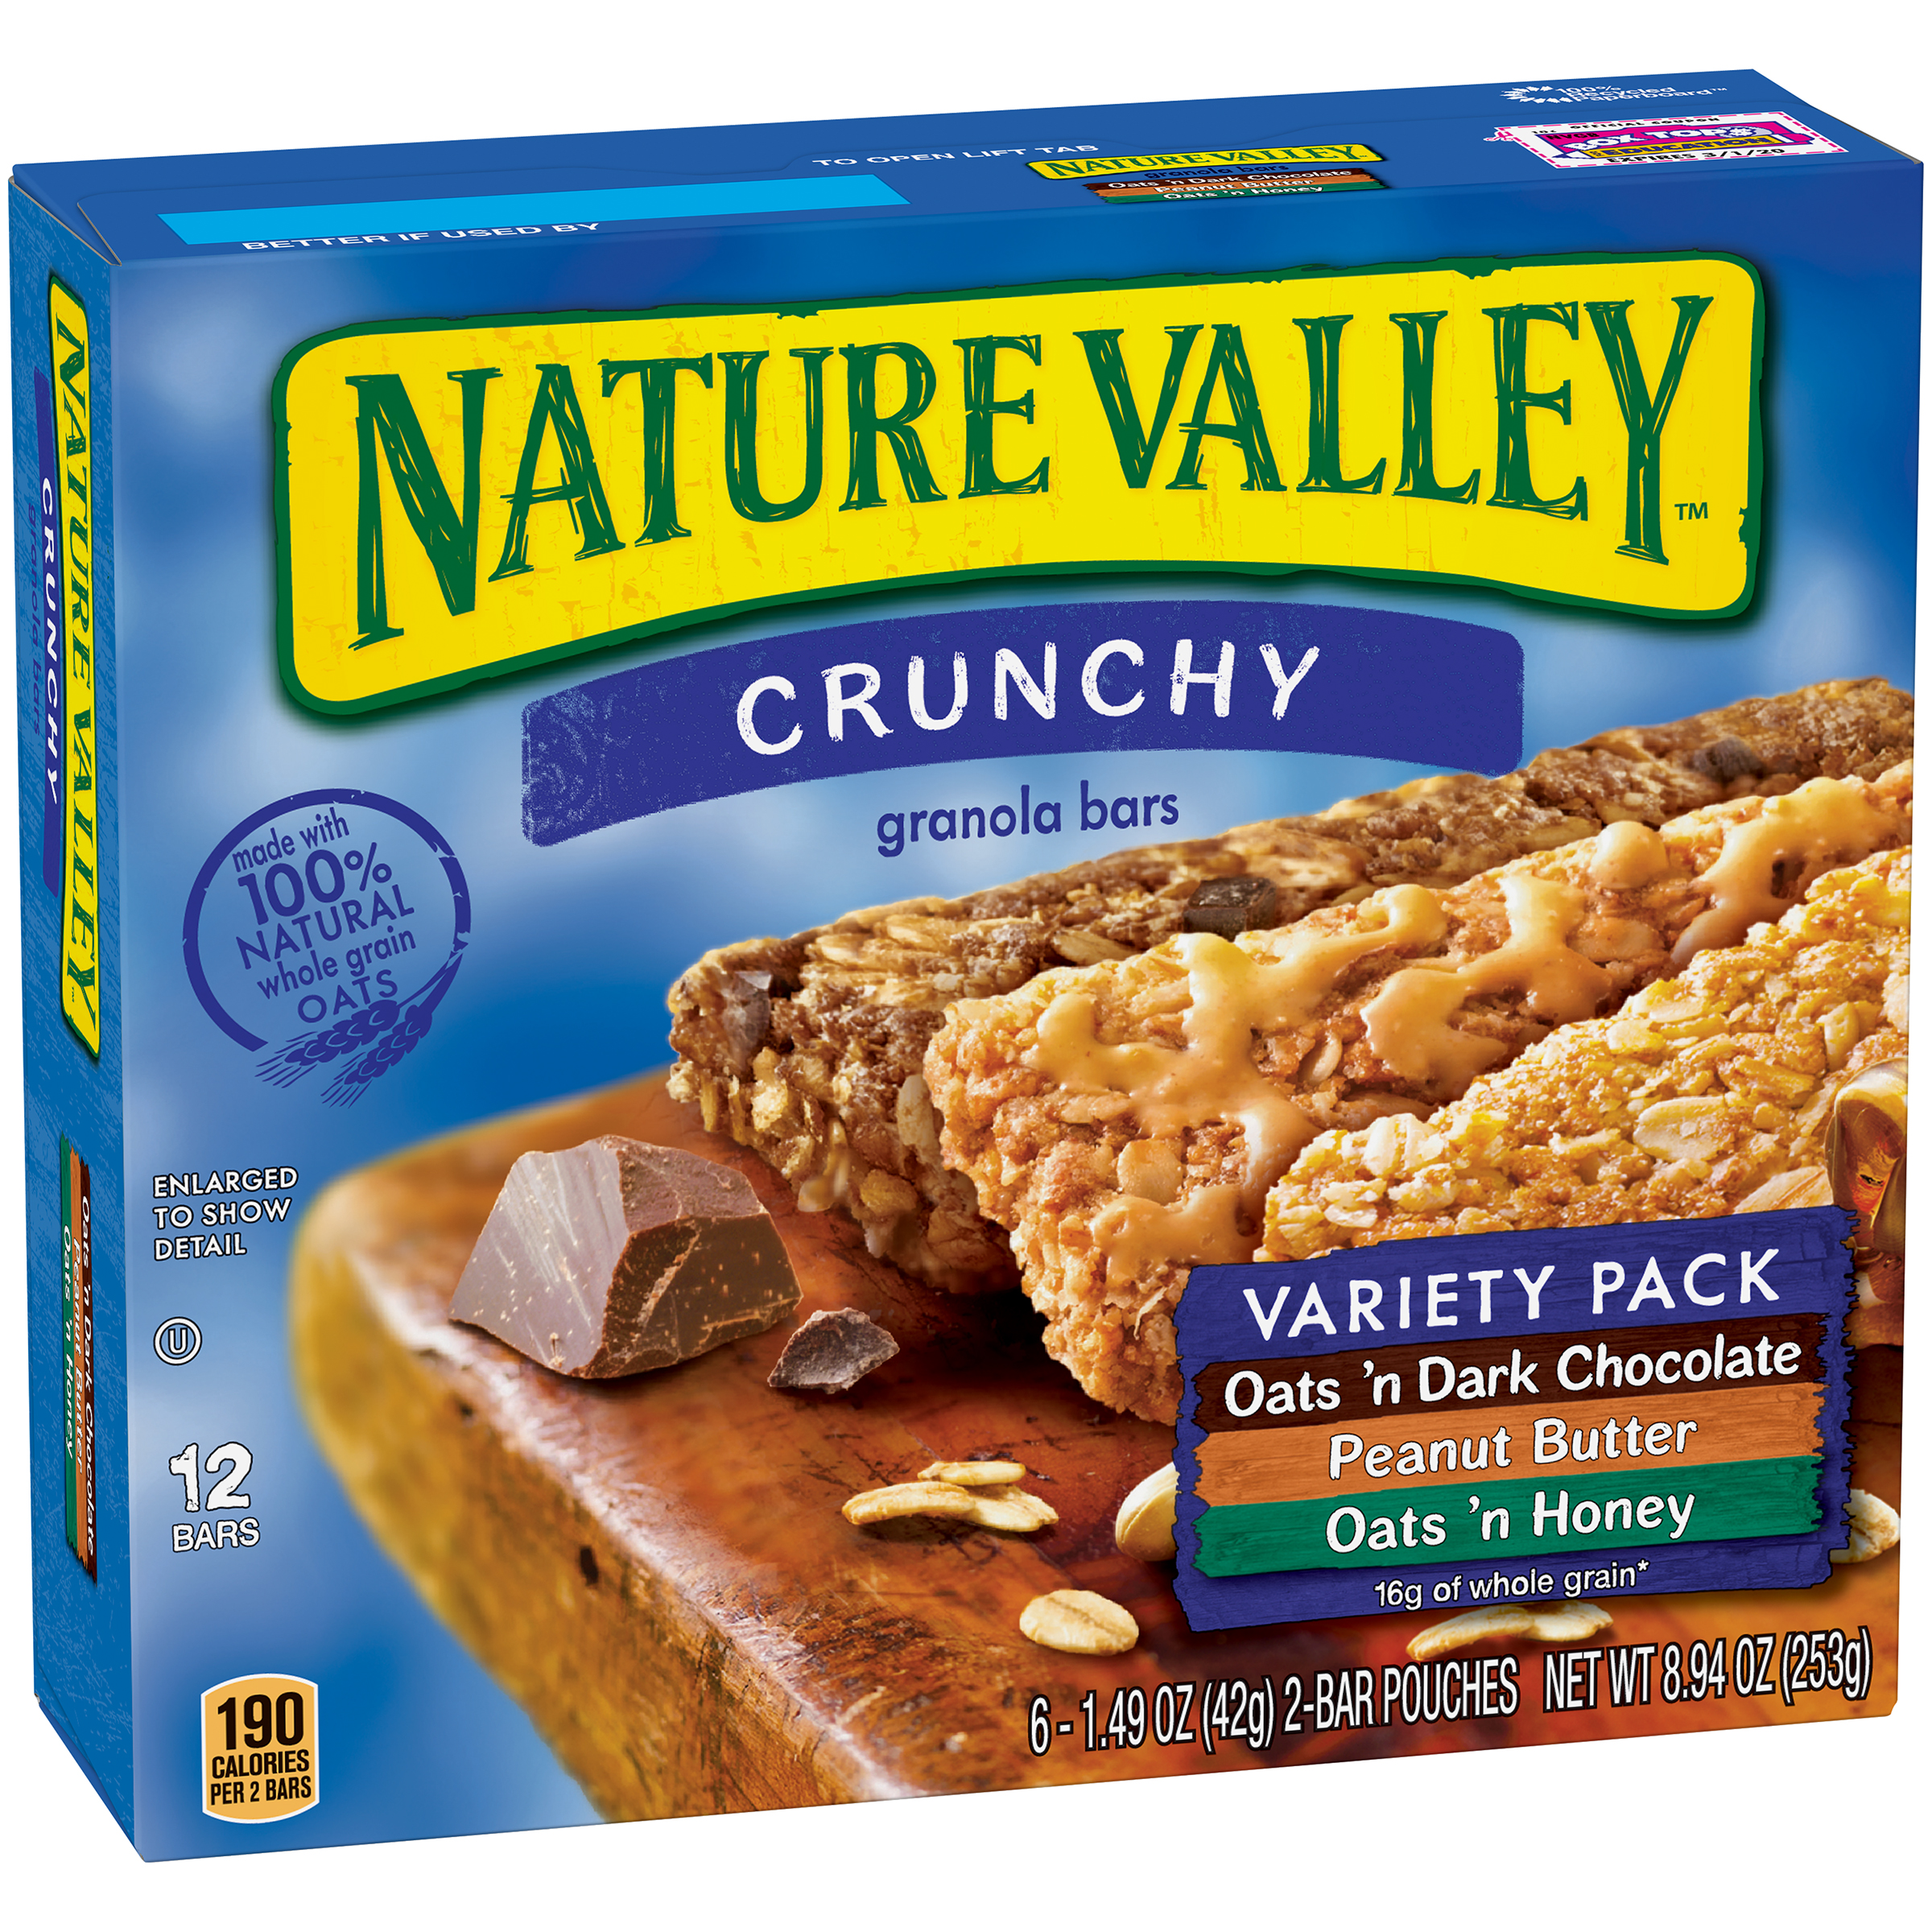 Nature Valley™ Crunchy Granola Bar Variety Pack of Oats 'n Dark Chocolate Peanut Butter and Oats 'n Honey 24 Bars In 12 - 1.49 oz 2-Bar Pouches